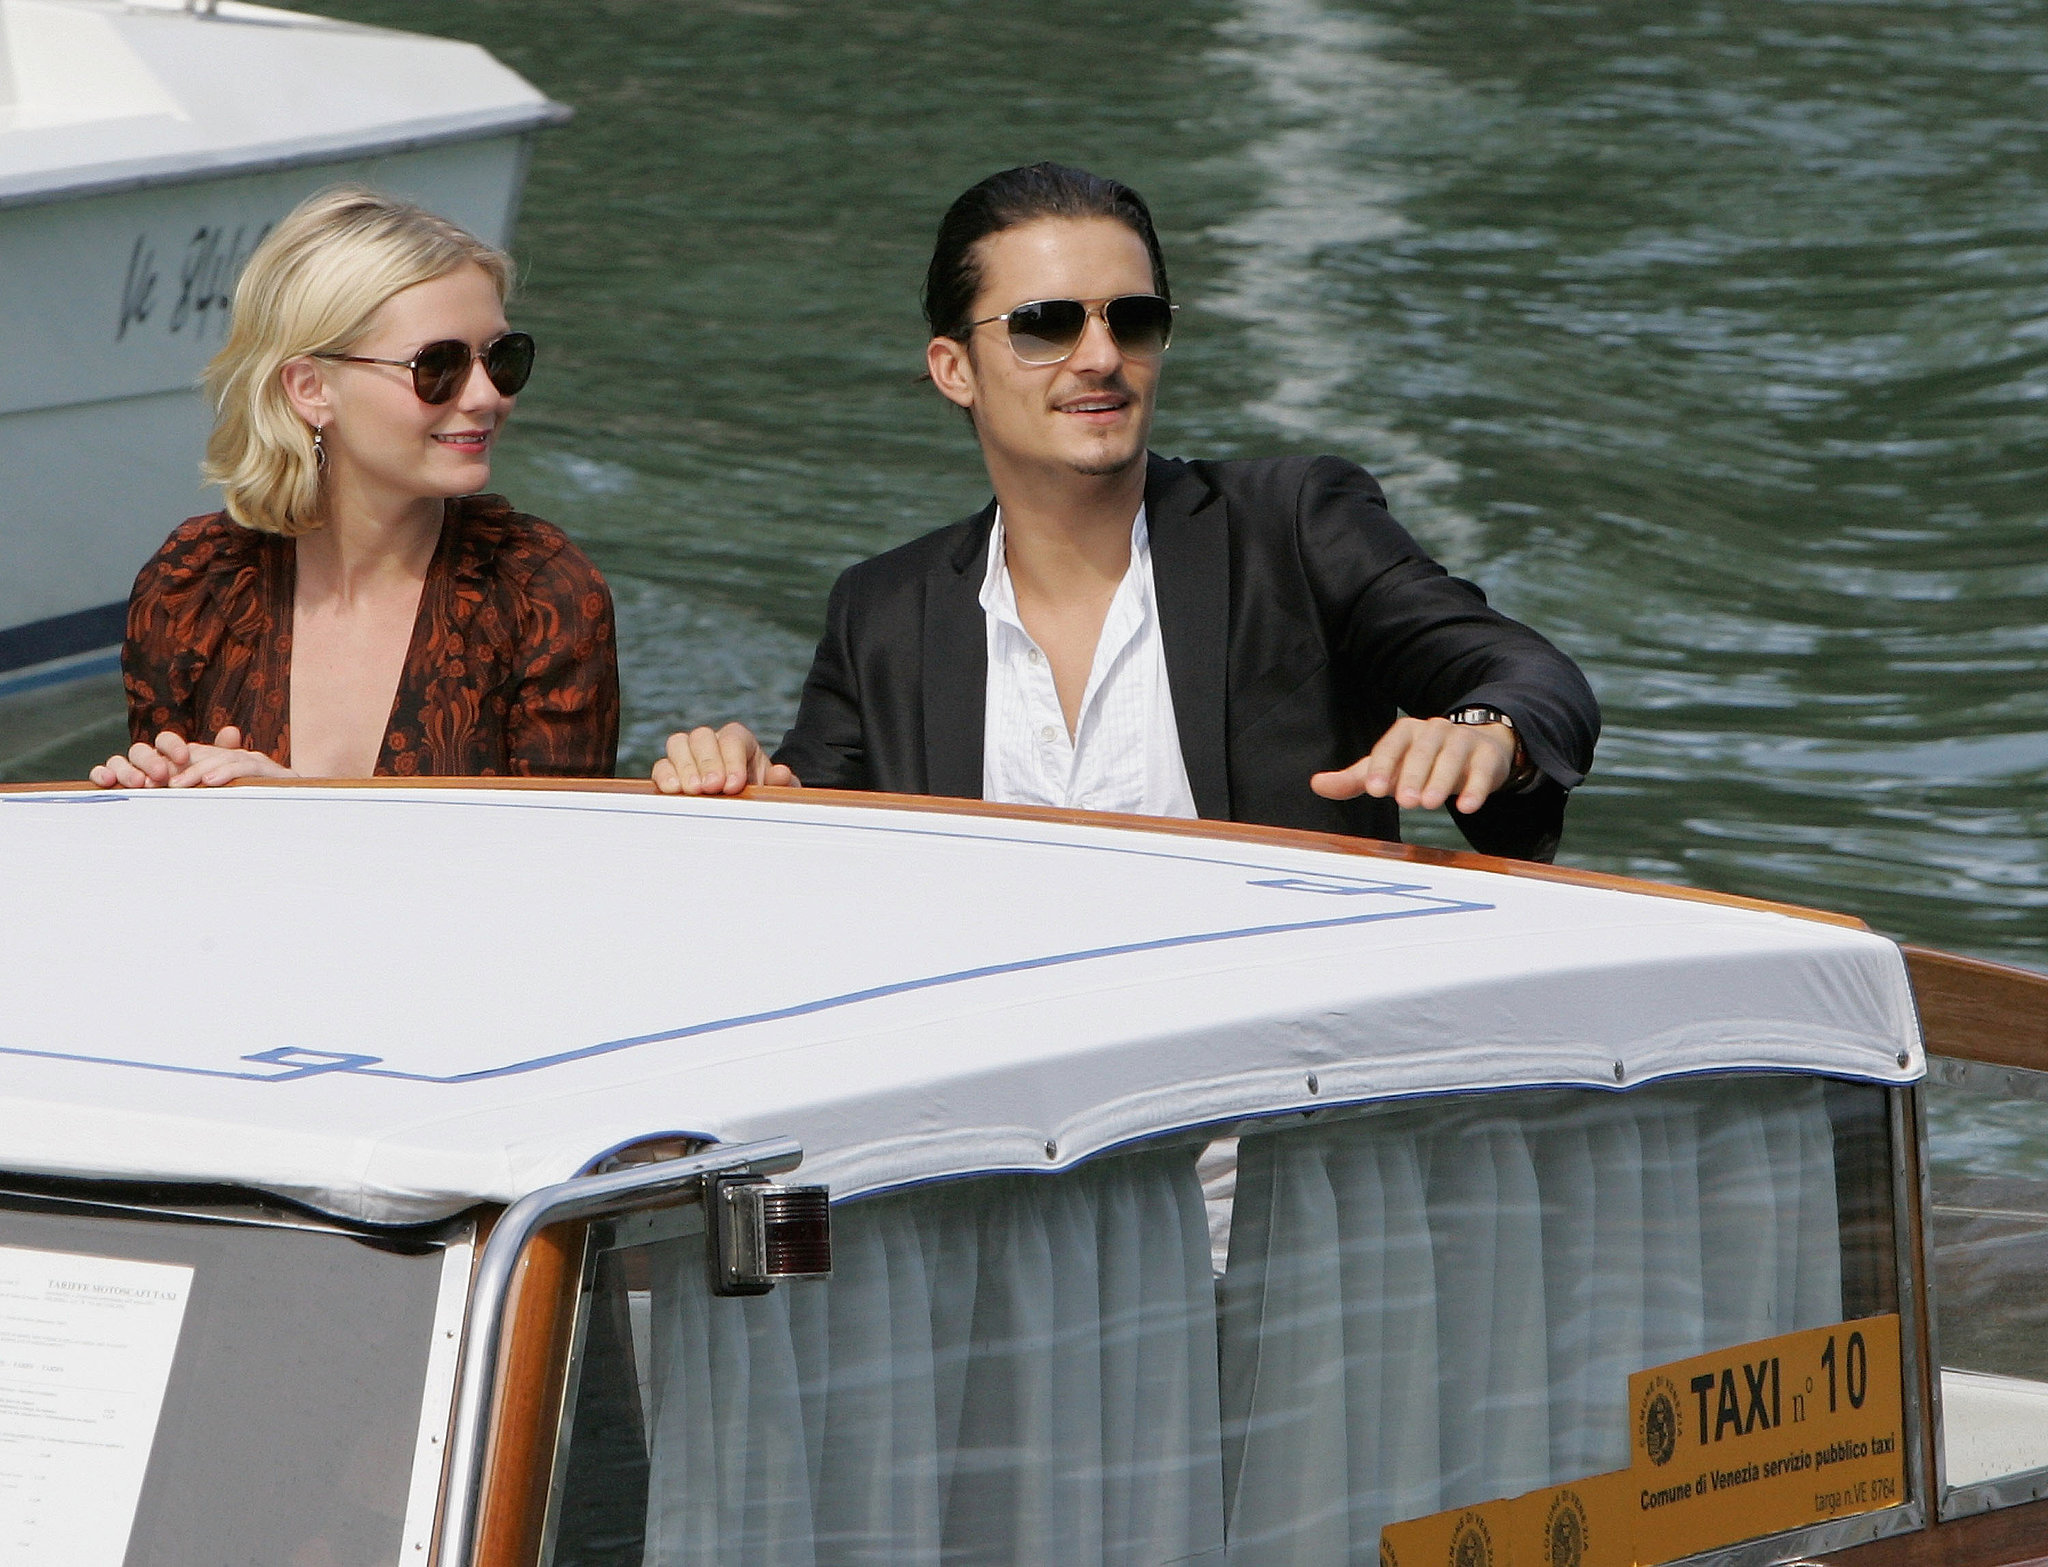 Orlando Bloom and Kirsten Dunst were together in September 2005 at the Venice Film Festival to promote Elizabethtown.